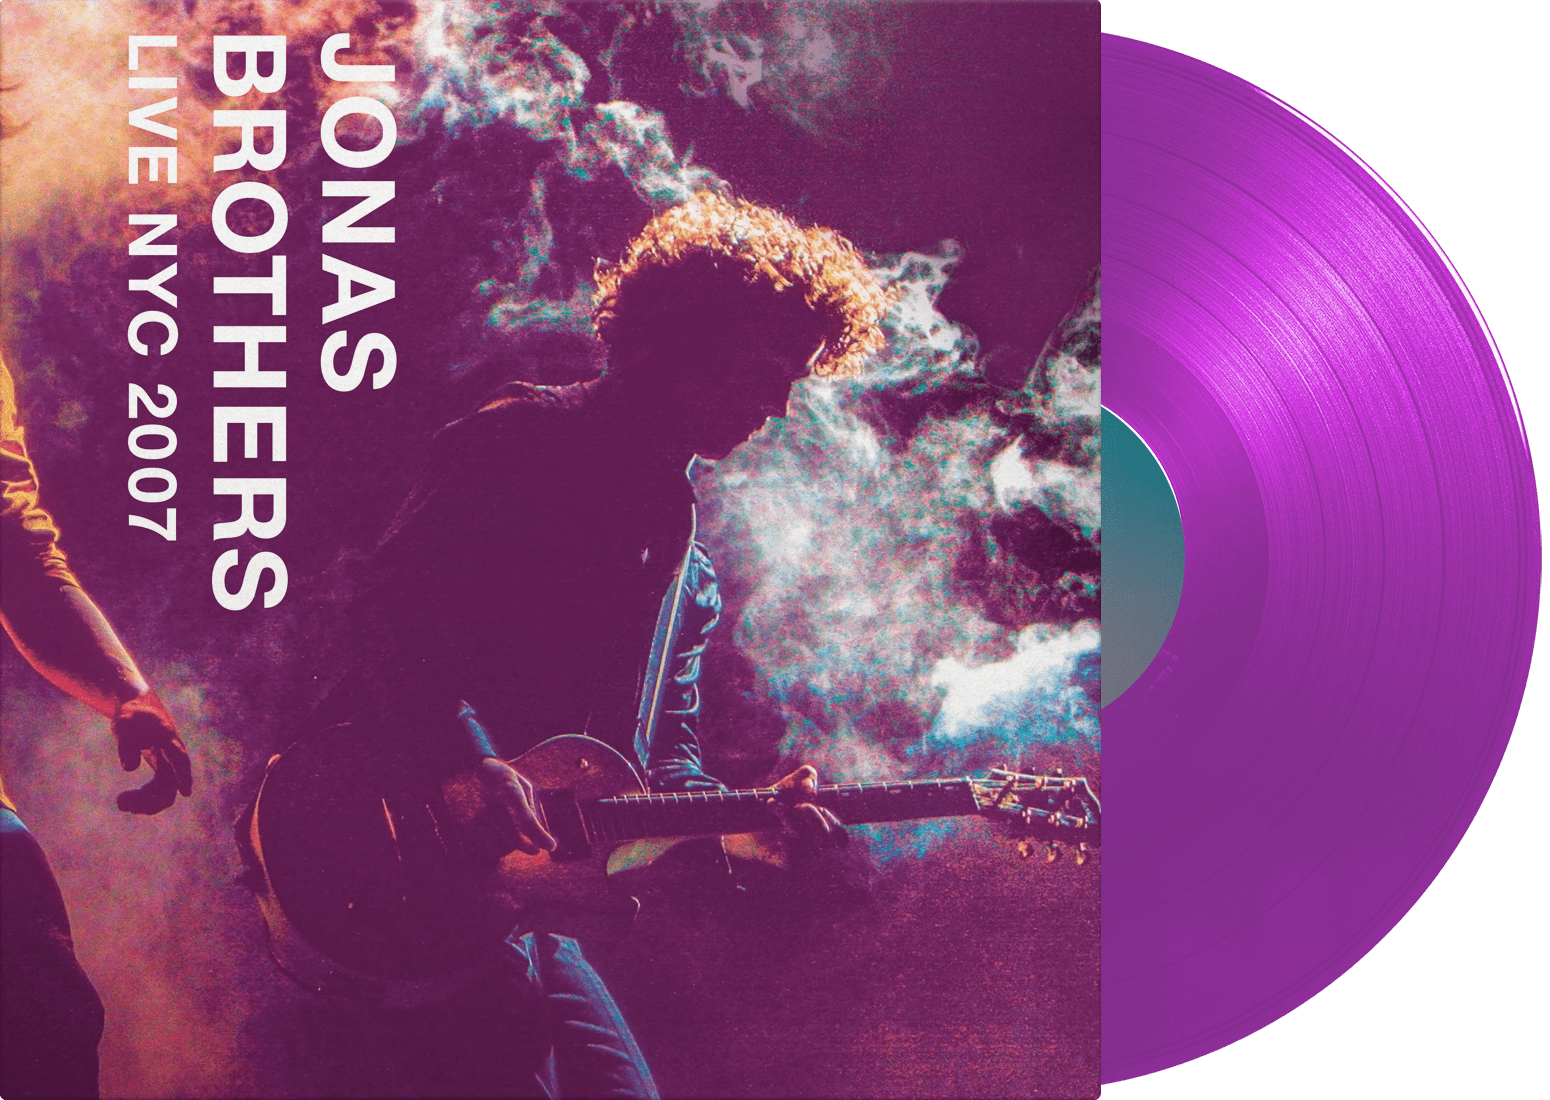 Jonas Brothers LP (Gold-in-White vinyl) + LIVE NYC 2007 LP (Purple vinyl)